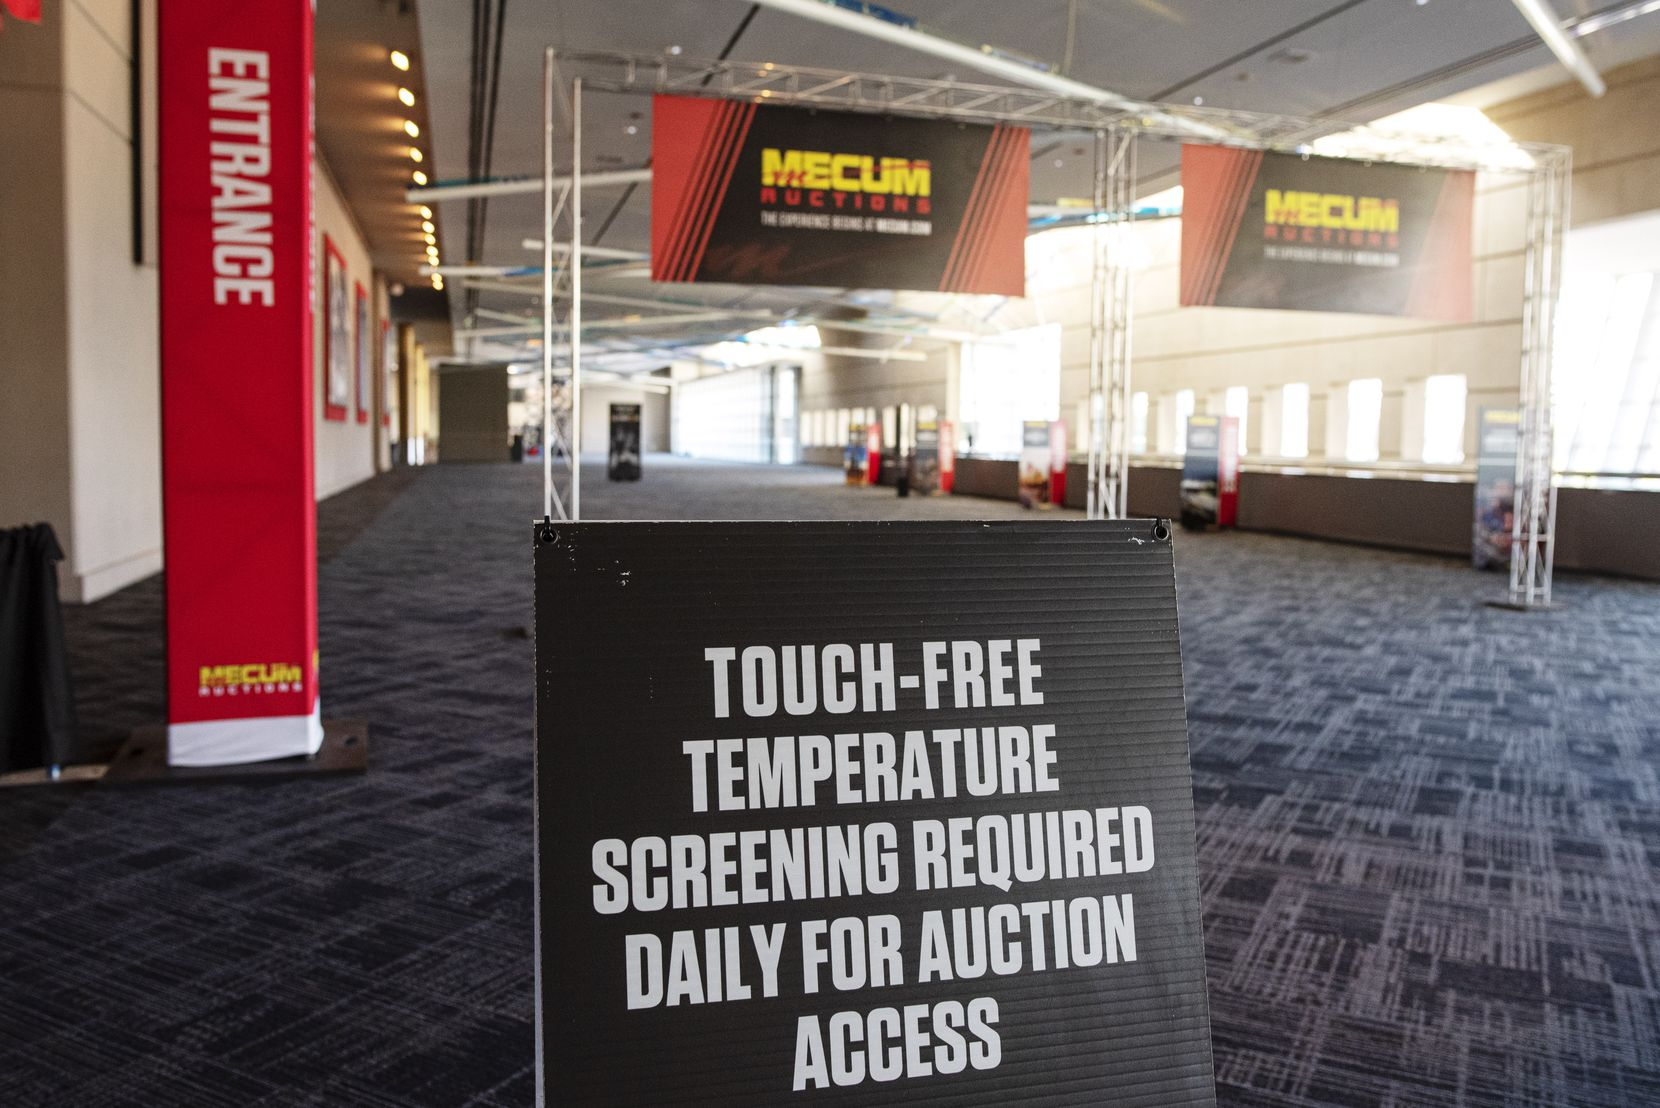 Before entering the main hall of the Kay Bailey Hutchison Convention Center for the Mecum Auto Auction, visitors will have daily temperature screenings.